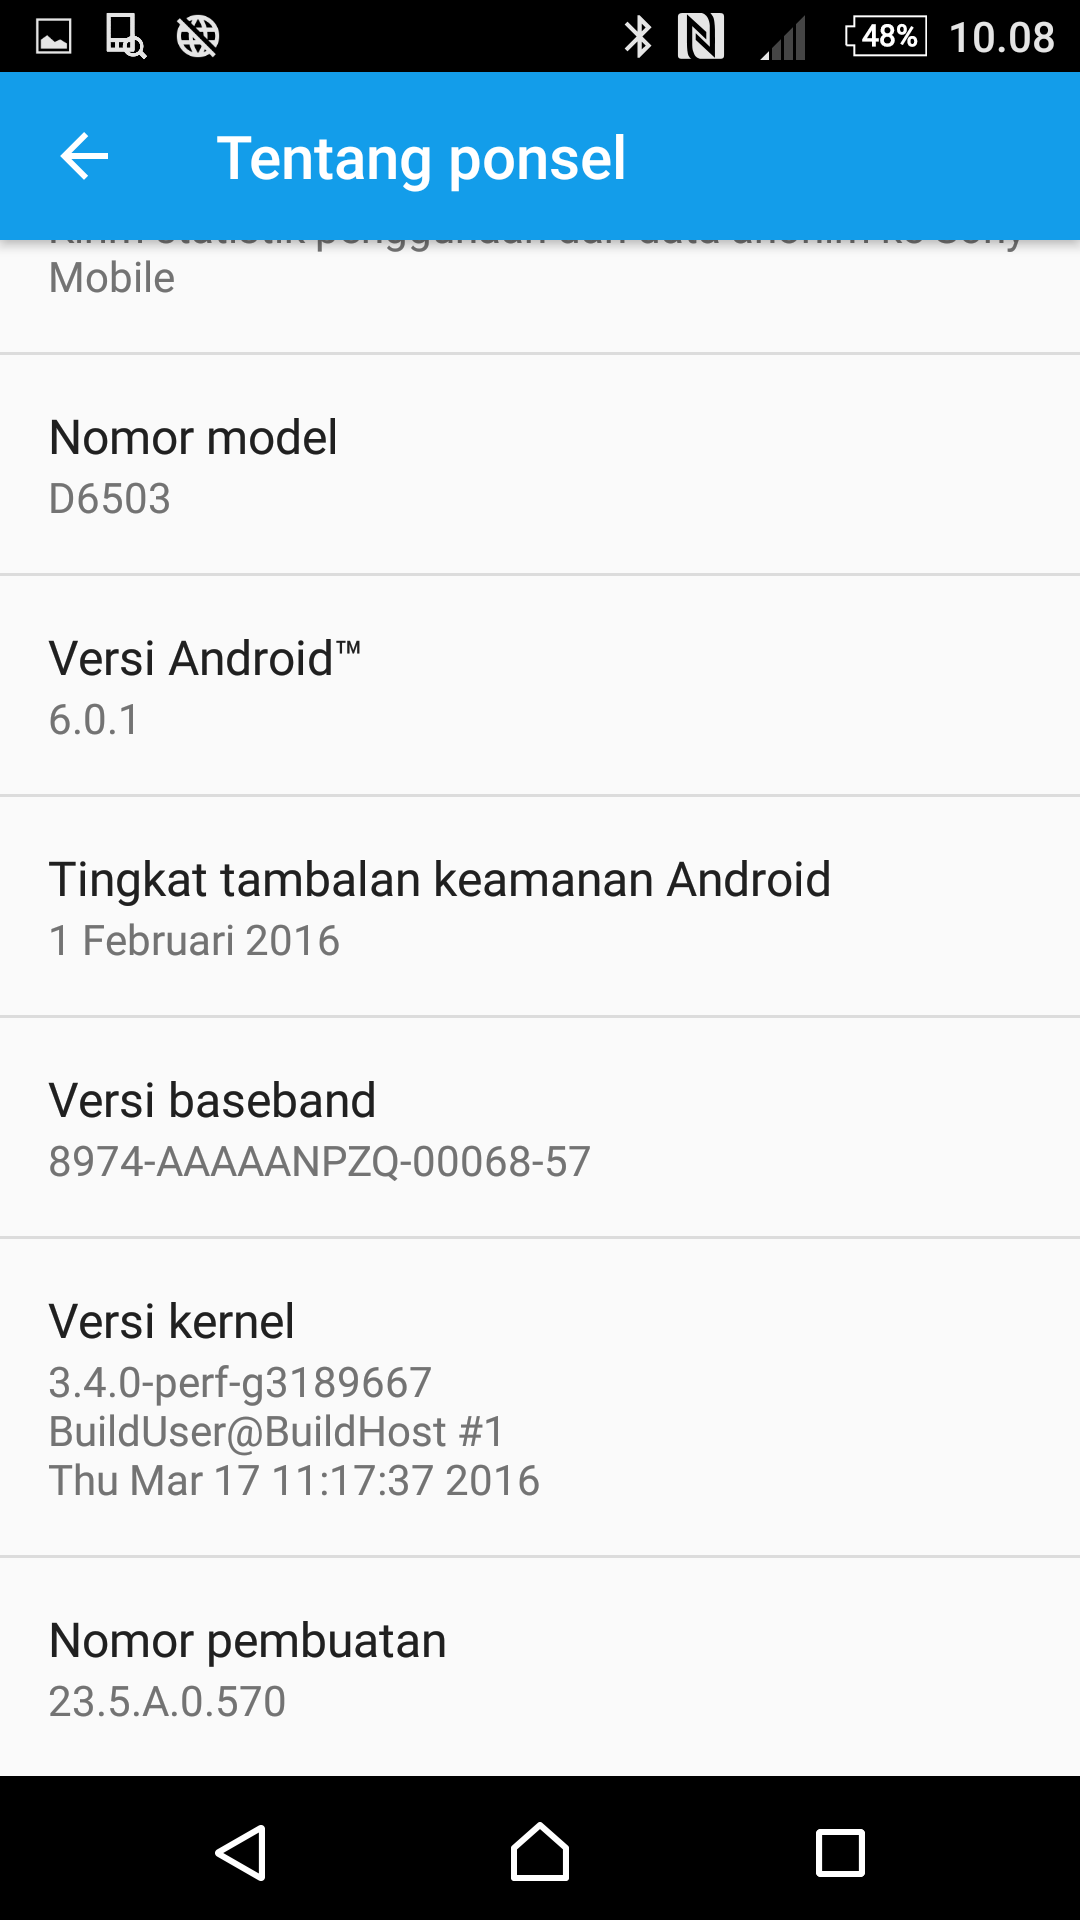 Xperia Z2 Android 6 0 1 Marshmallow 23 5 A 0 570 firmware